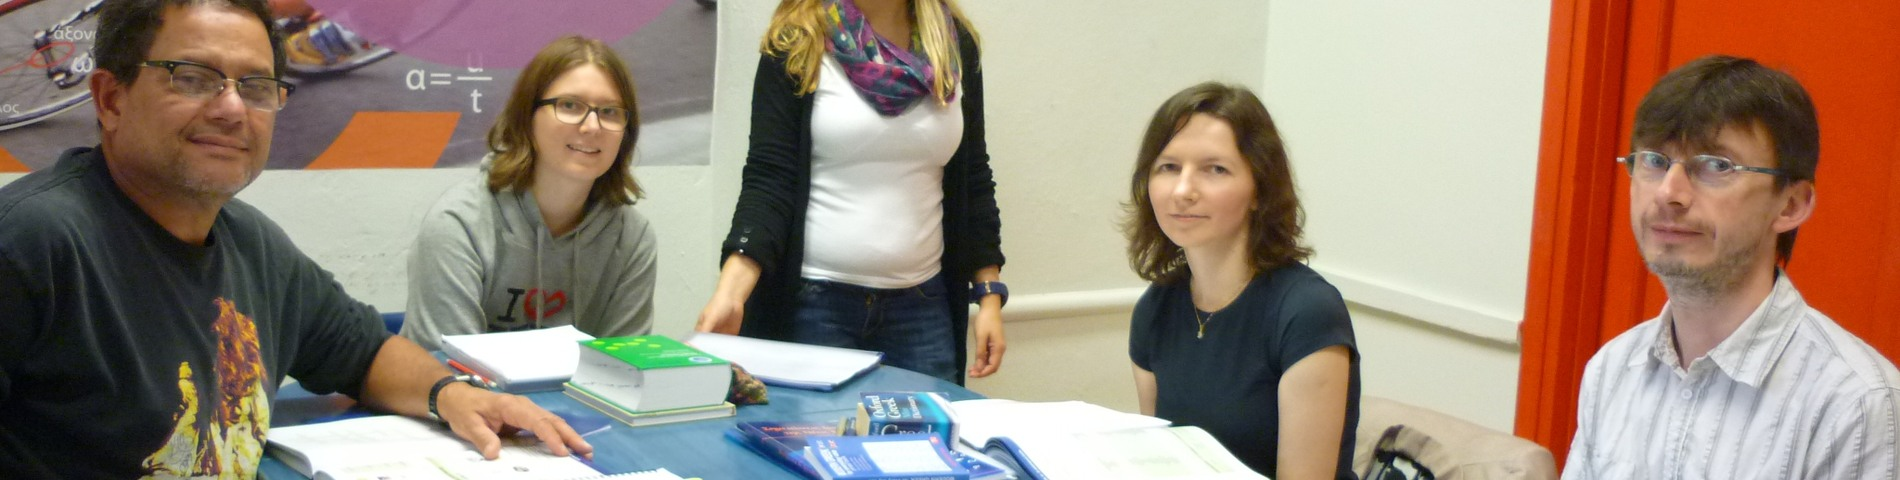 Hellenic Language School Alexander the Great foto 1